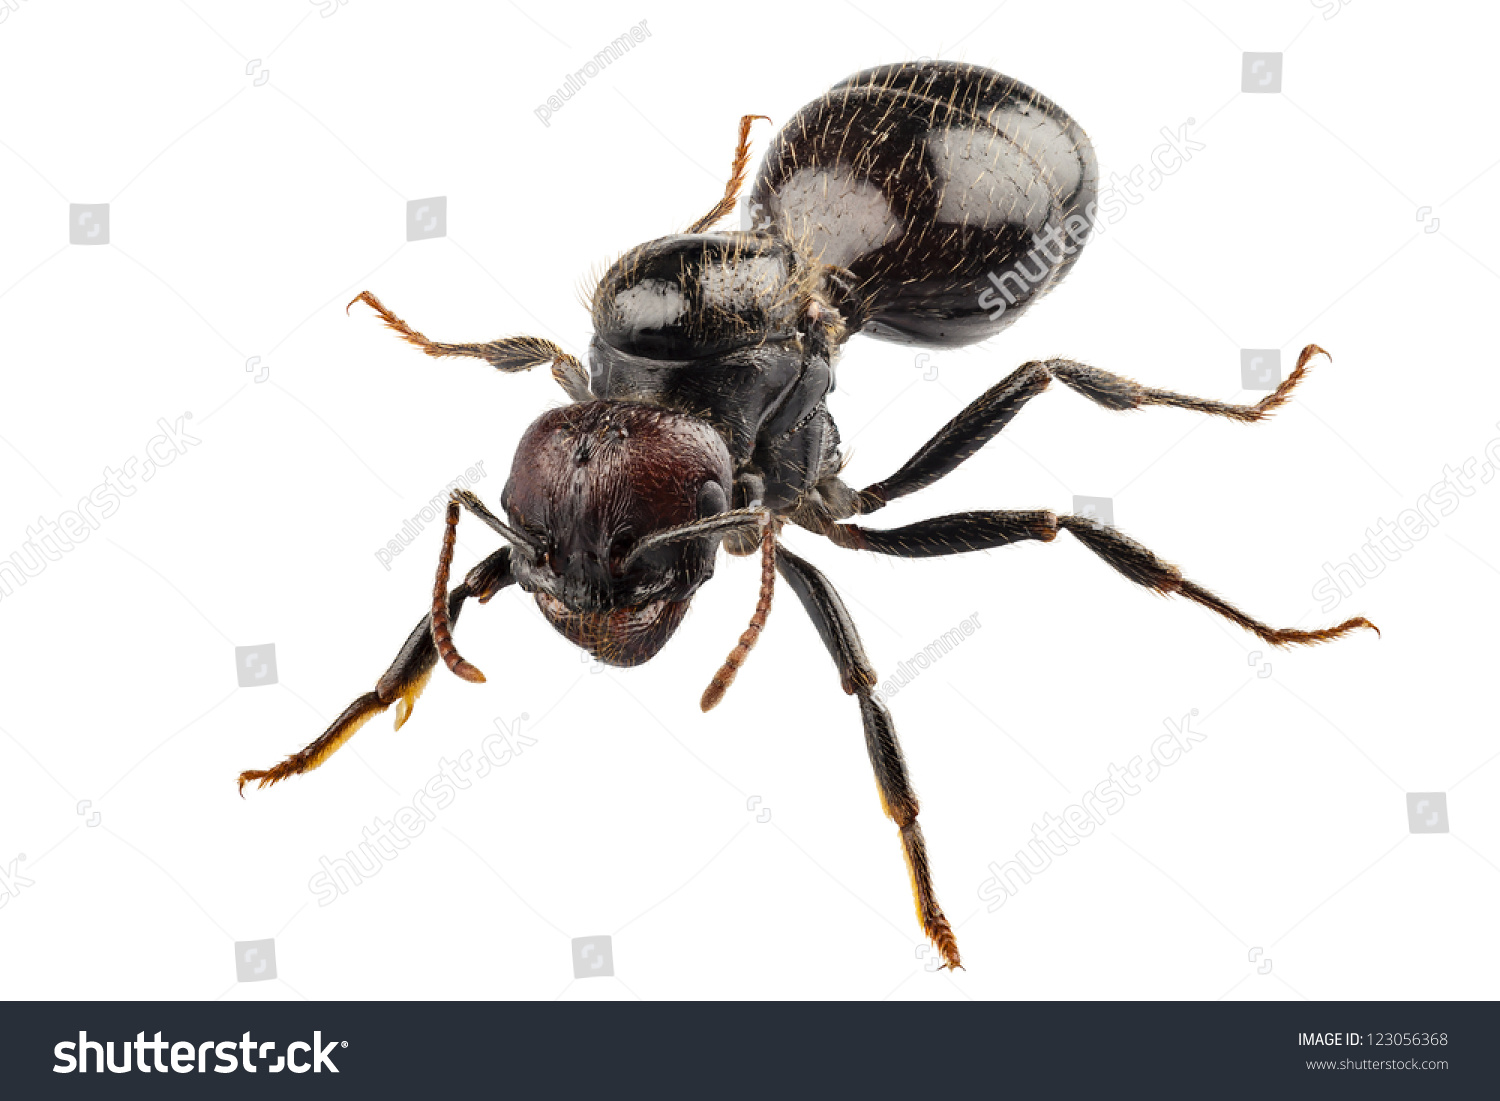 Black Garden Ant Species Lasius Niger Stock Photo 123056368   Shutterstock